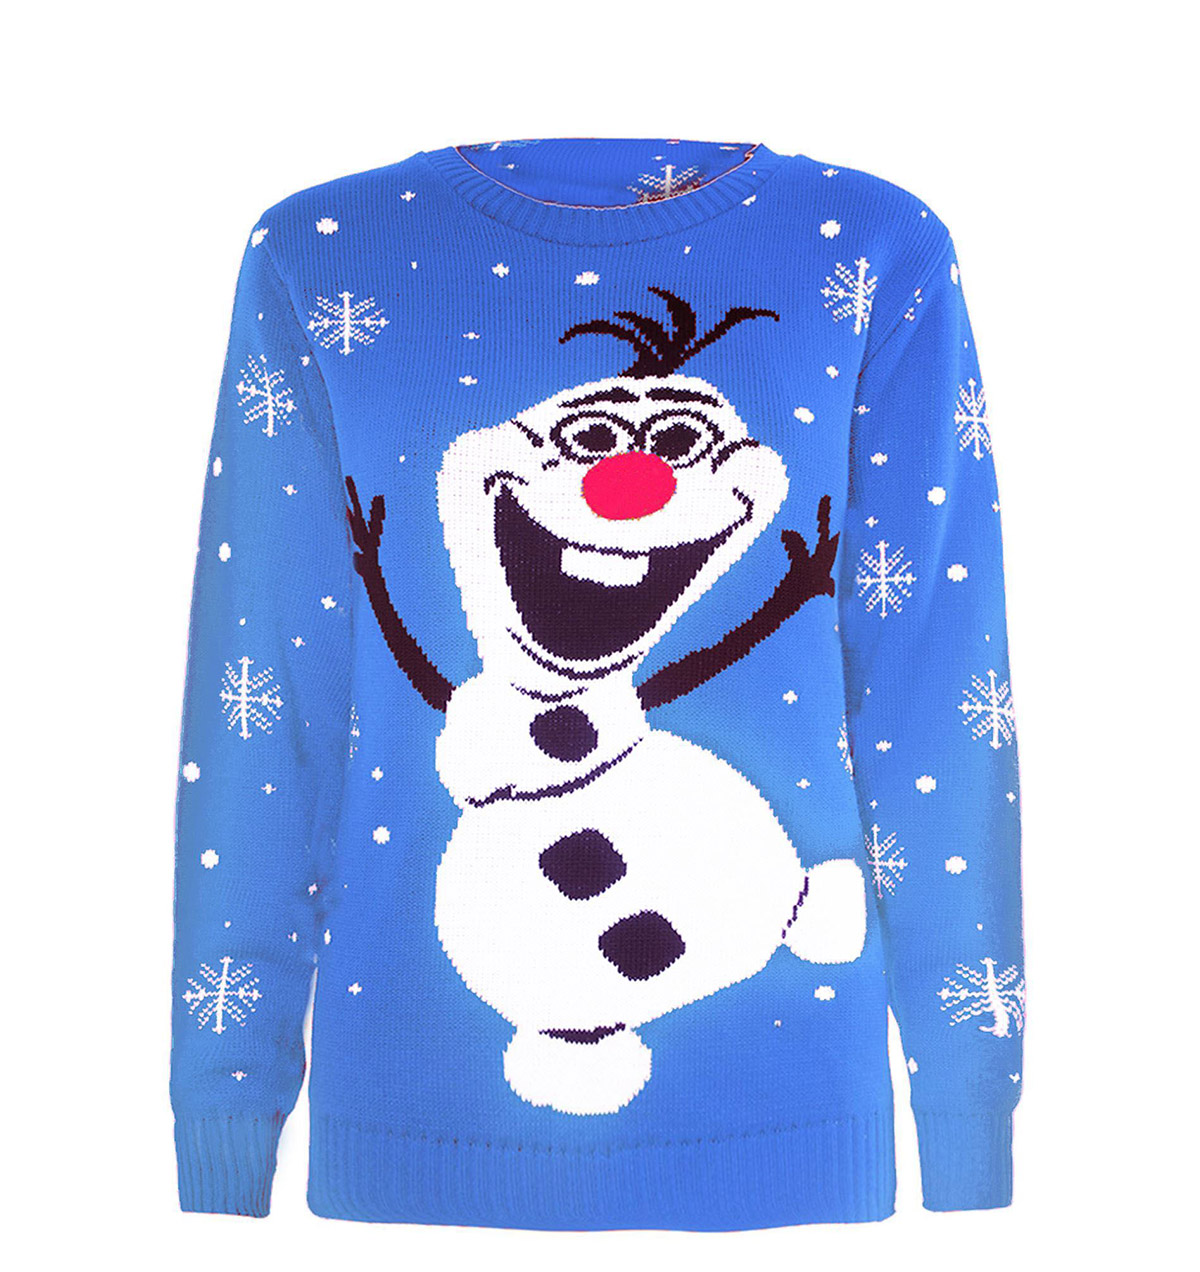 Tacky Olaf Christmas Sweater Knitted In Blue - Ugly Christmas ...